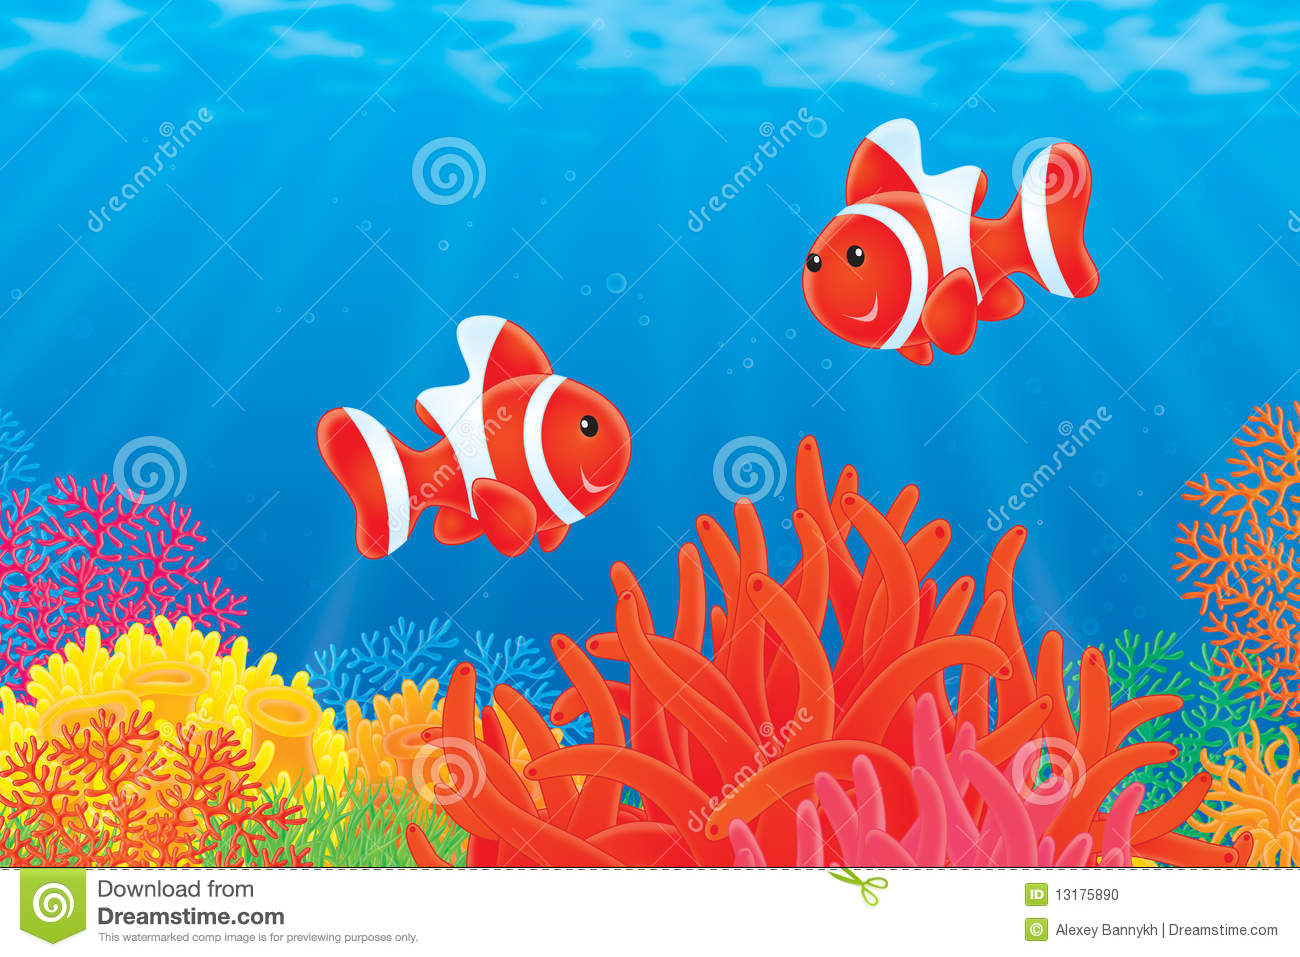 Anemonefishes stock illustration. Illustration of colorful - 13175890